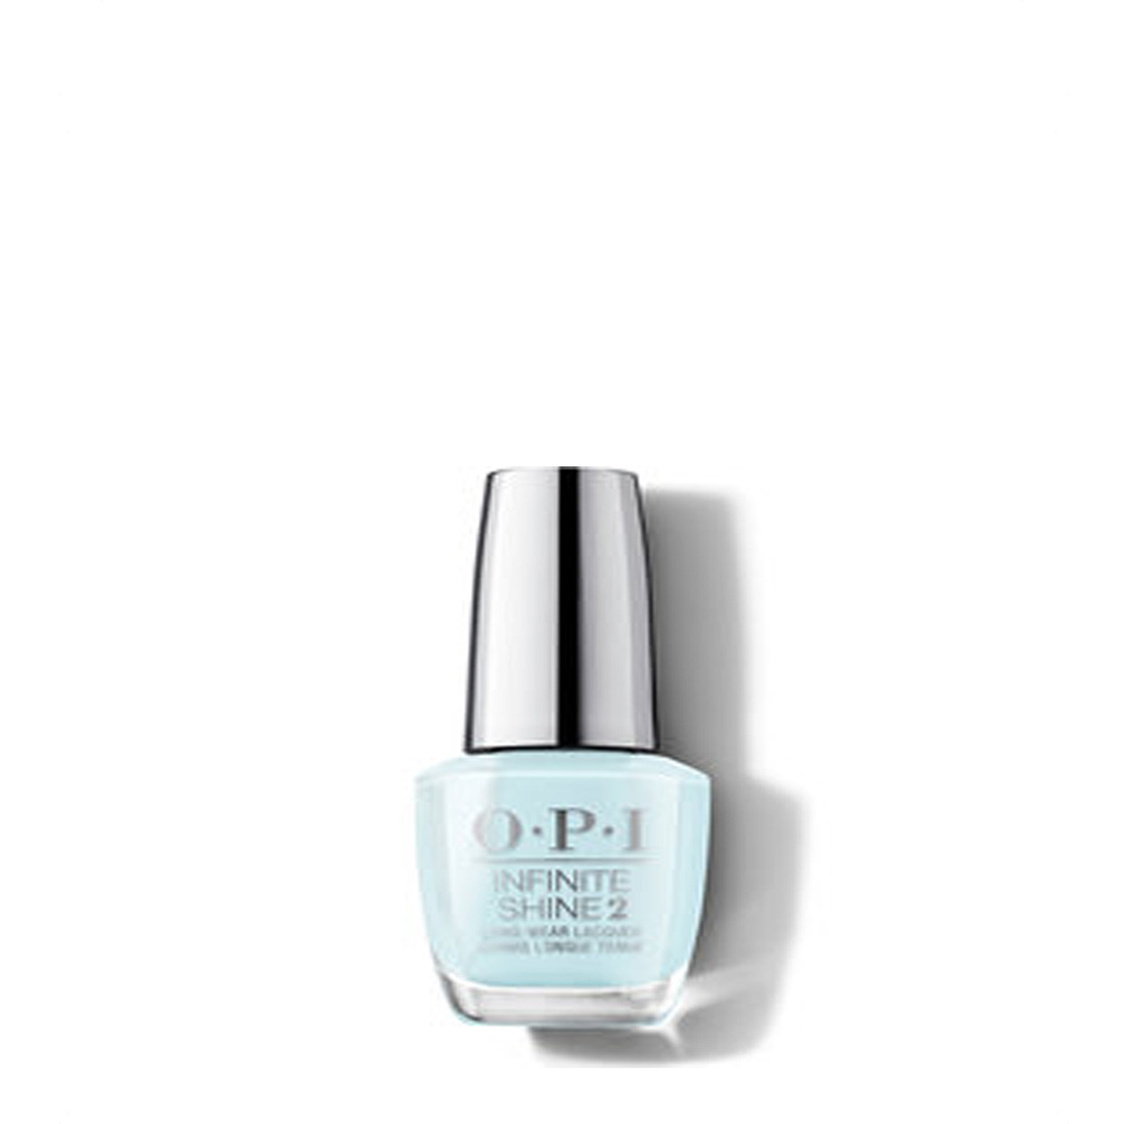 OPI Is - Mexico City Move-Mint